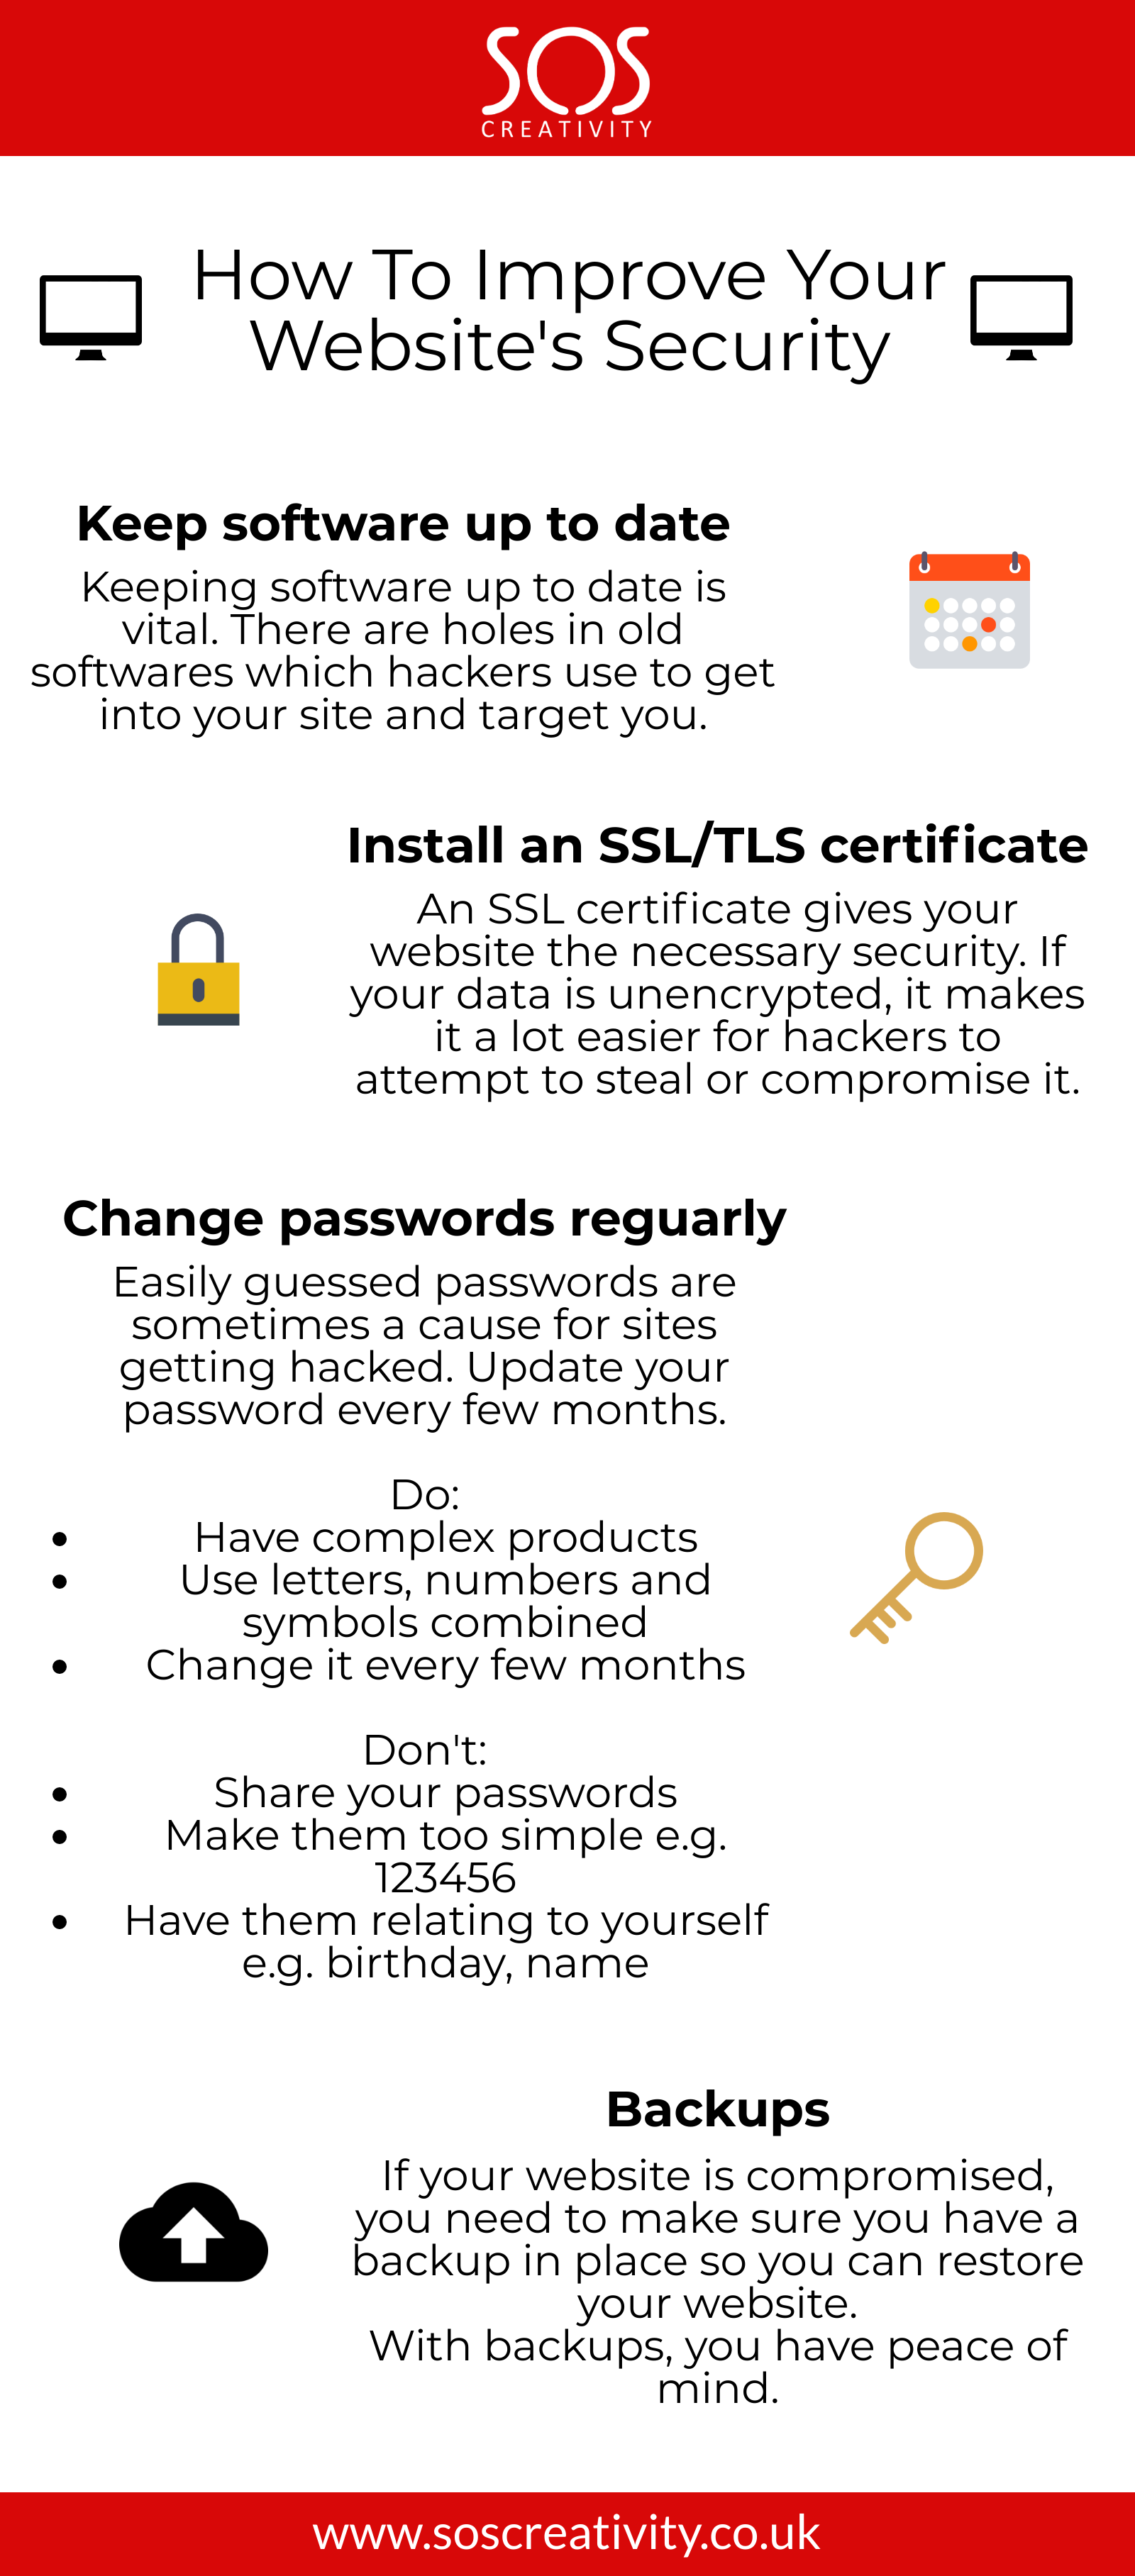 How To Improve Your Website's Security - SOS Creativity Web